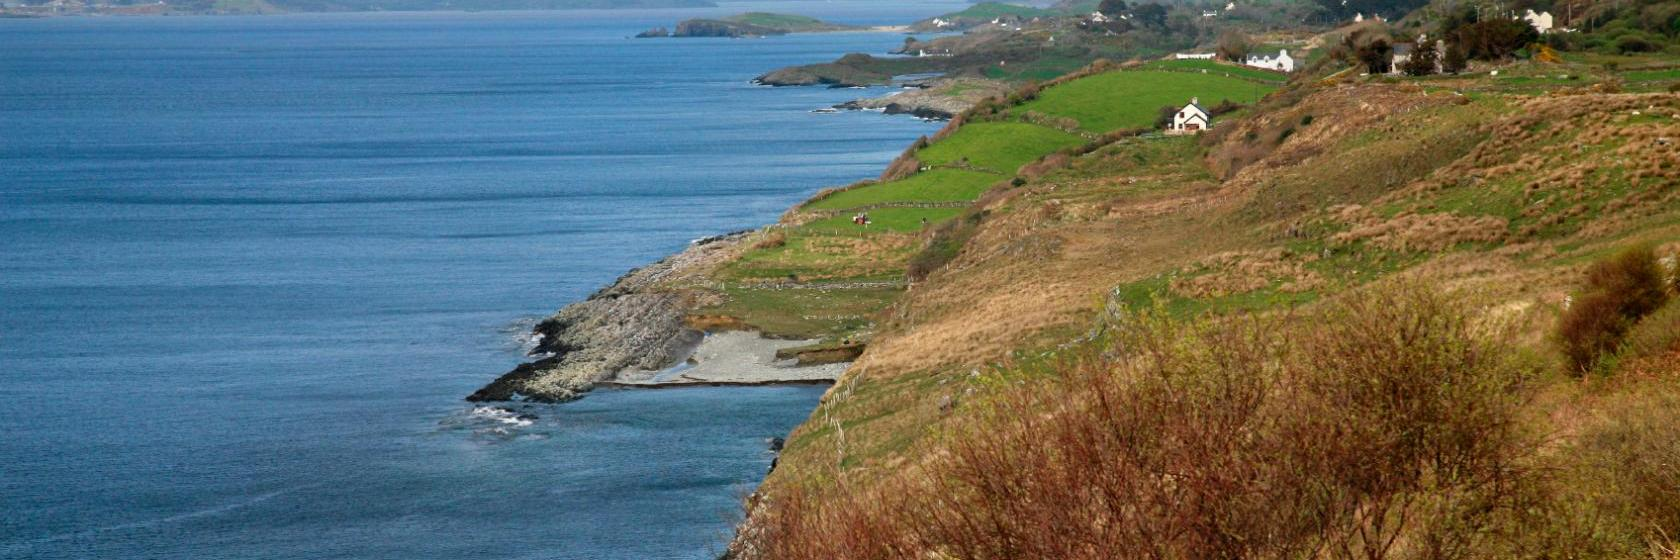 Valentia Island to Bantry - 4 ways to travel via train, bus, taxi